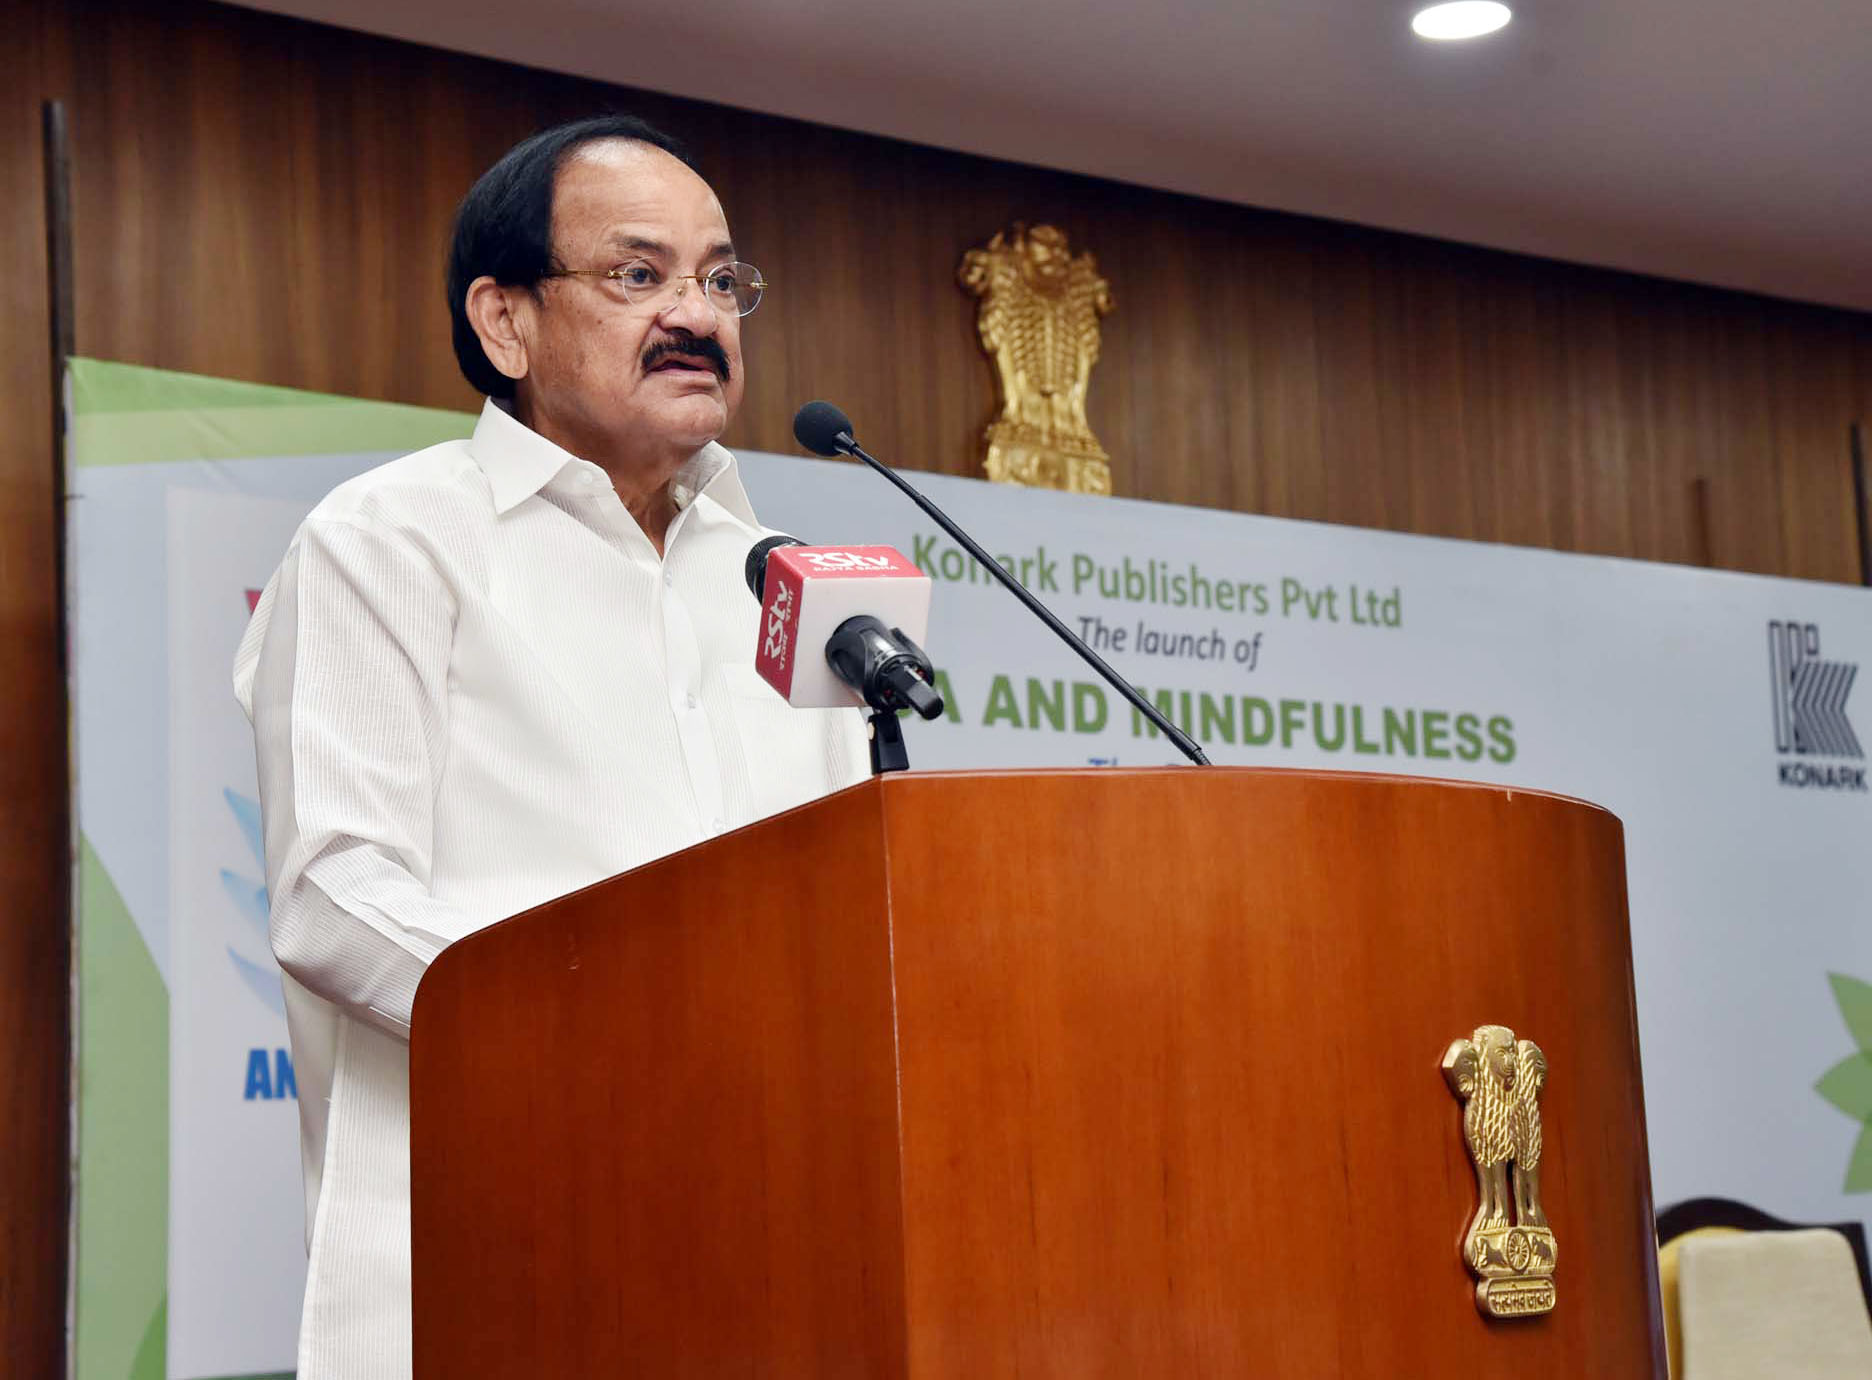 Non-communicable diseases, unequal access to healthcare are major challenges in Health sector: VP Naidu